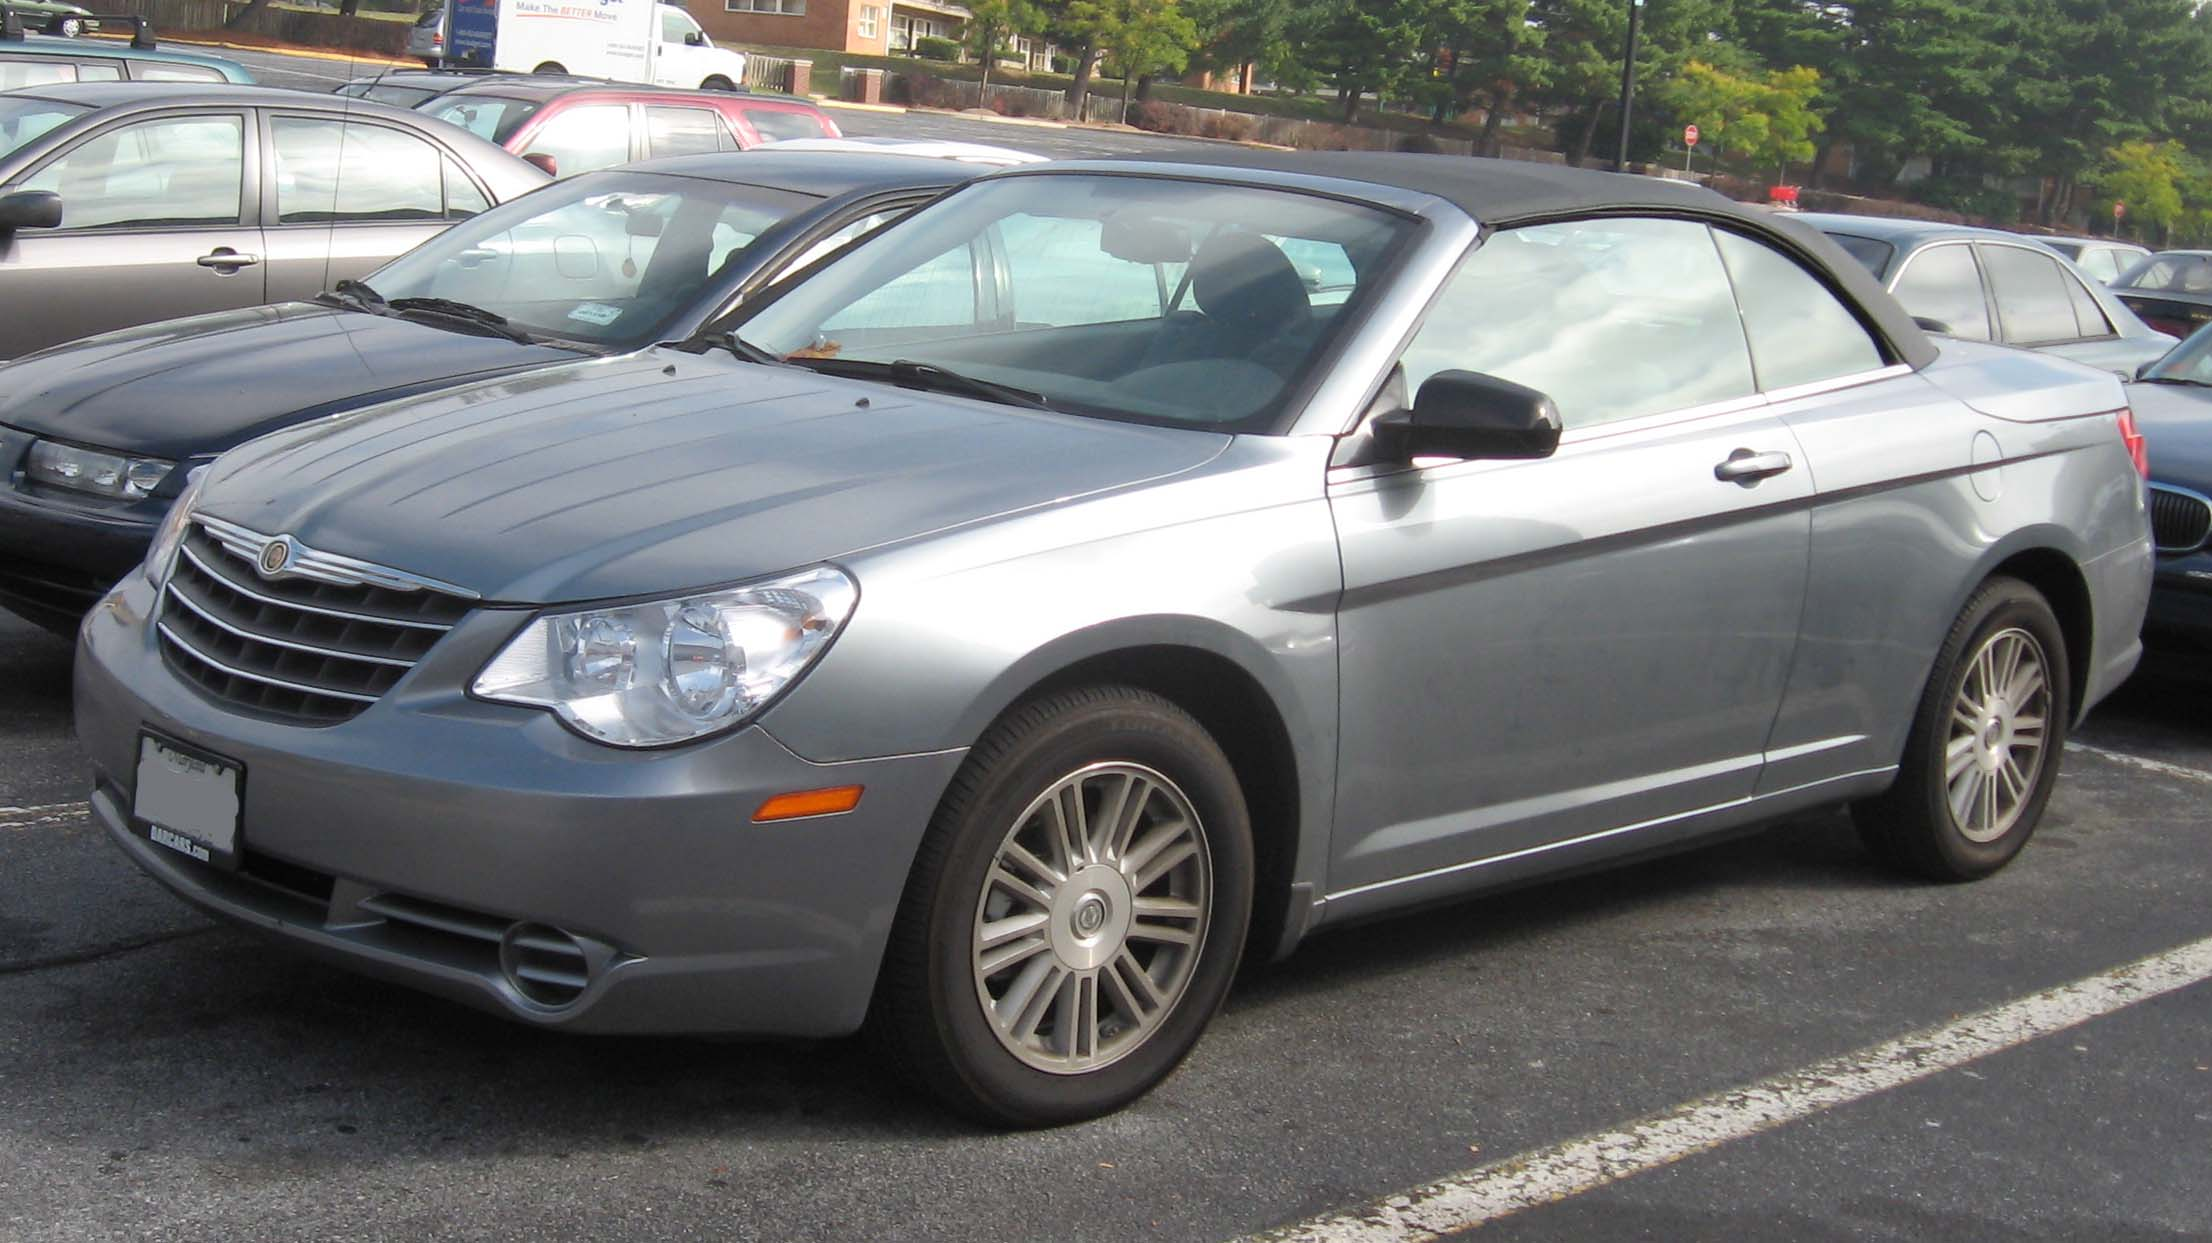 Chrysler Sebring 2008 #6